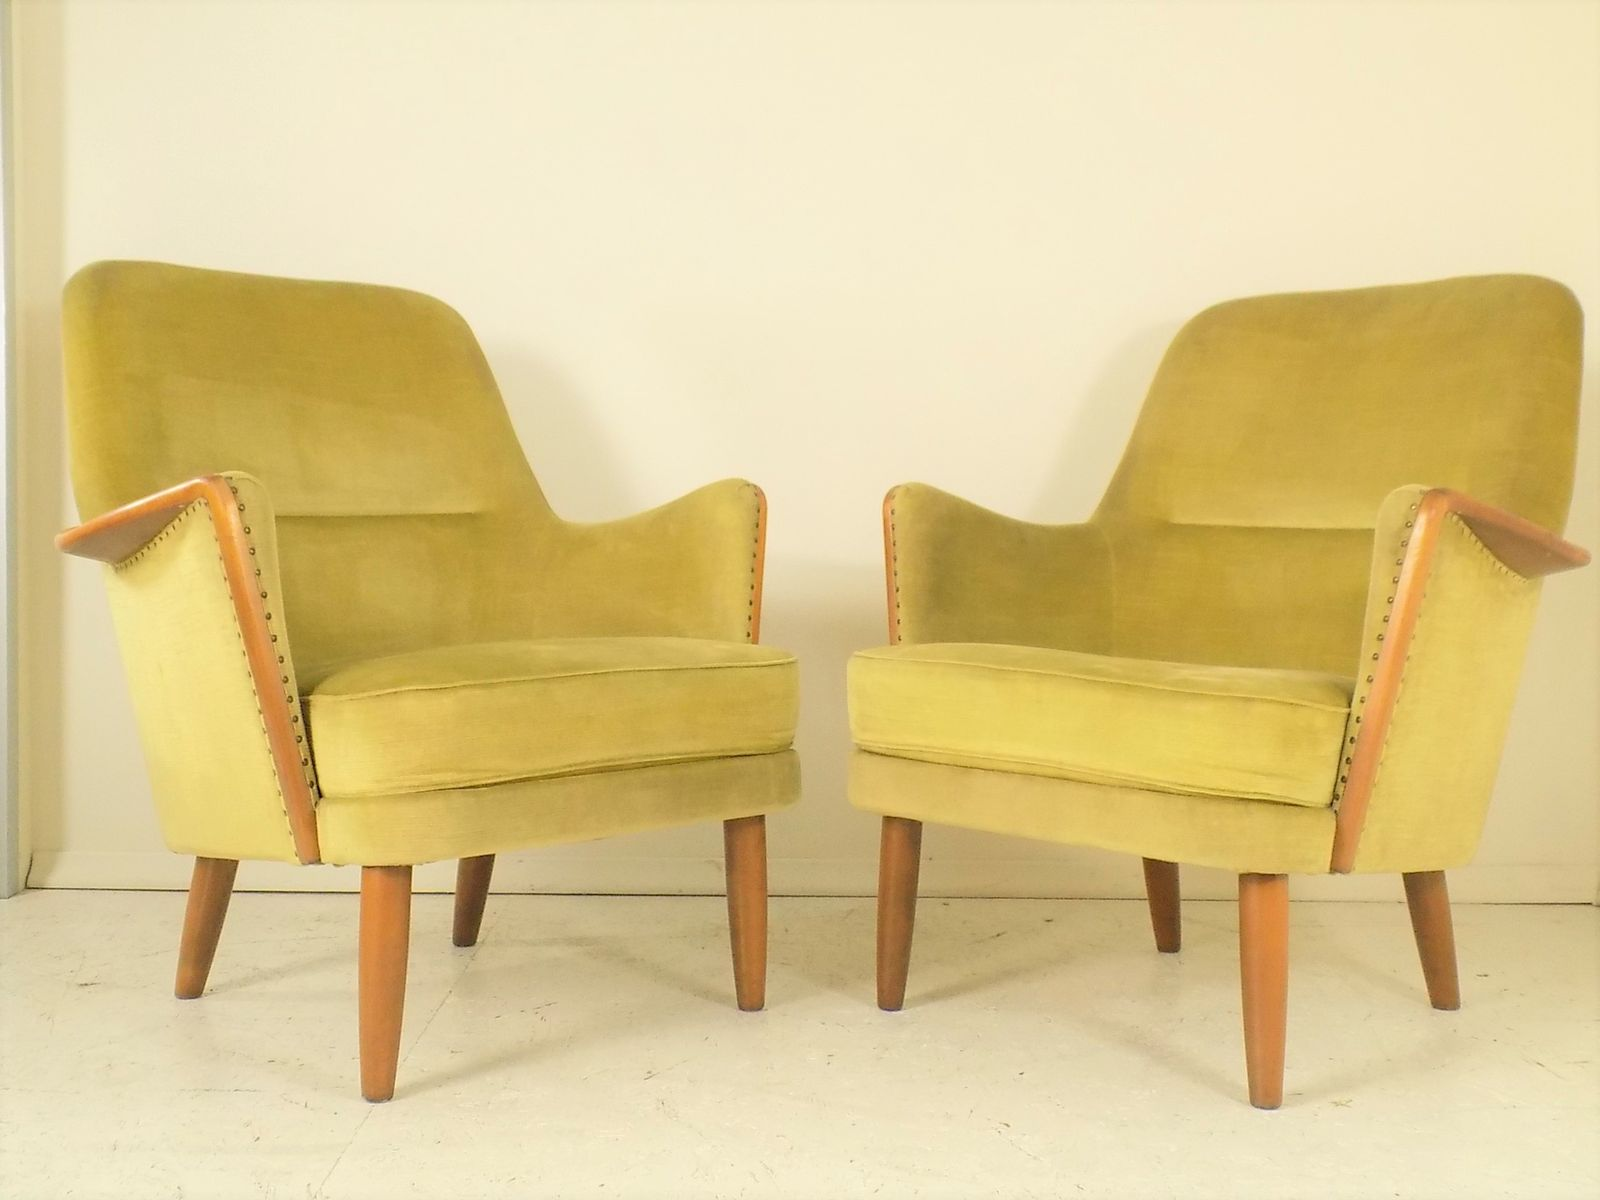 Vintage Beech and Velvet Lounge Chairs 1960s Set of 2 for sale